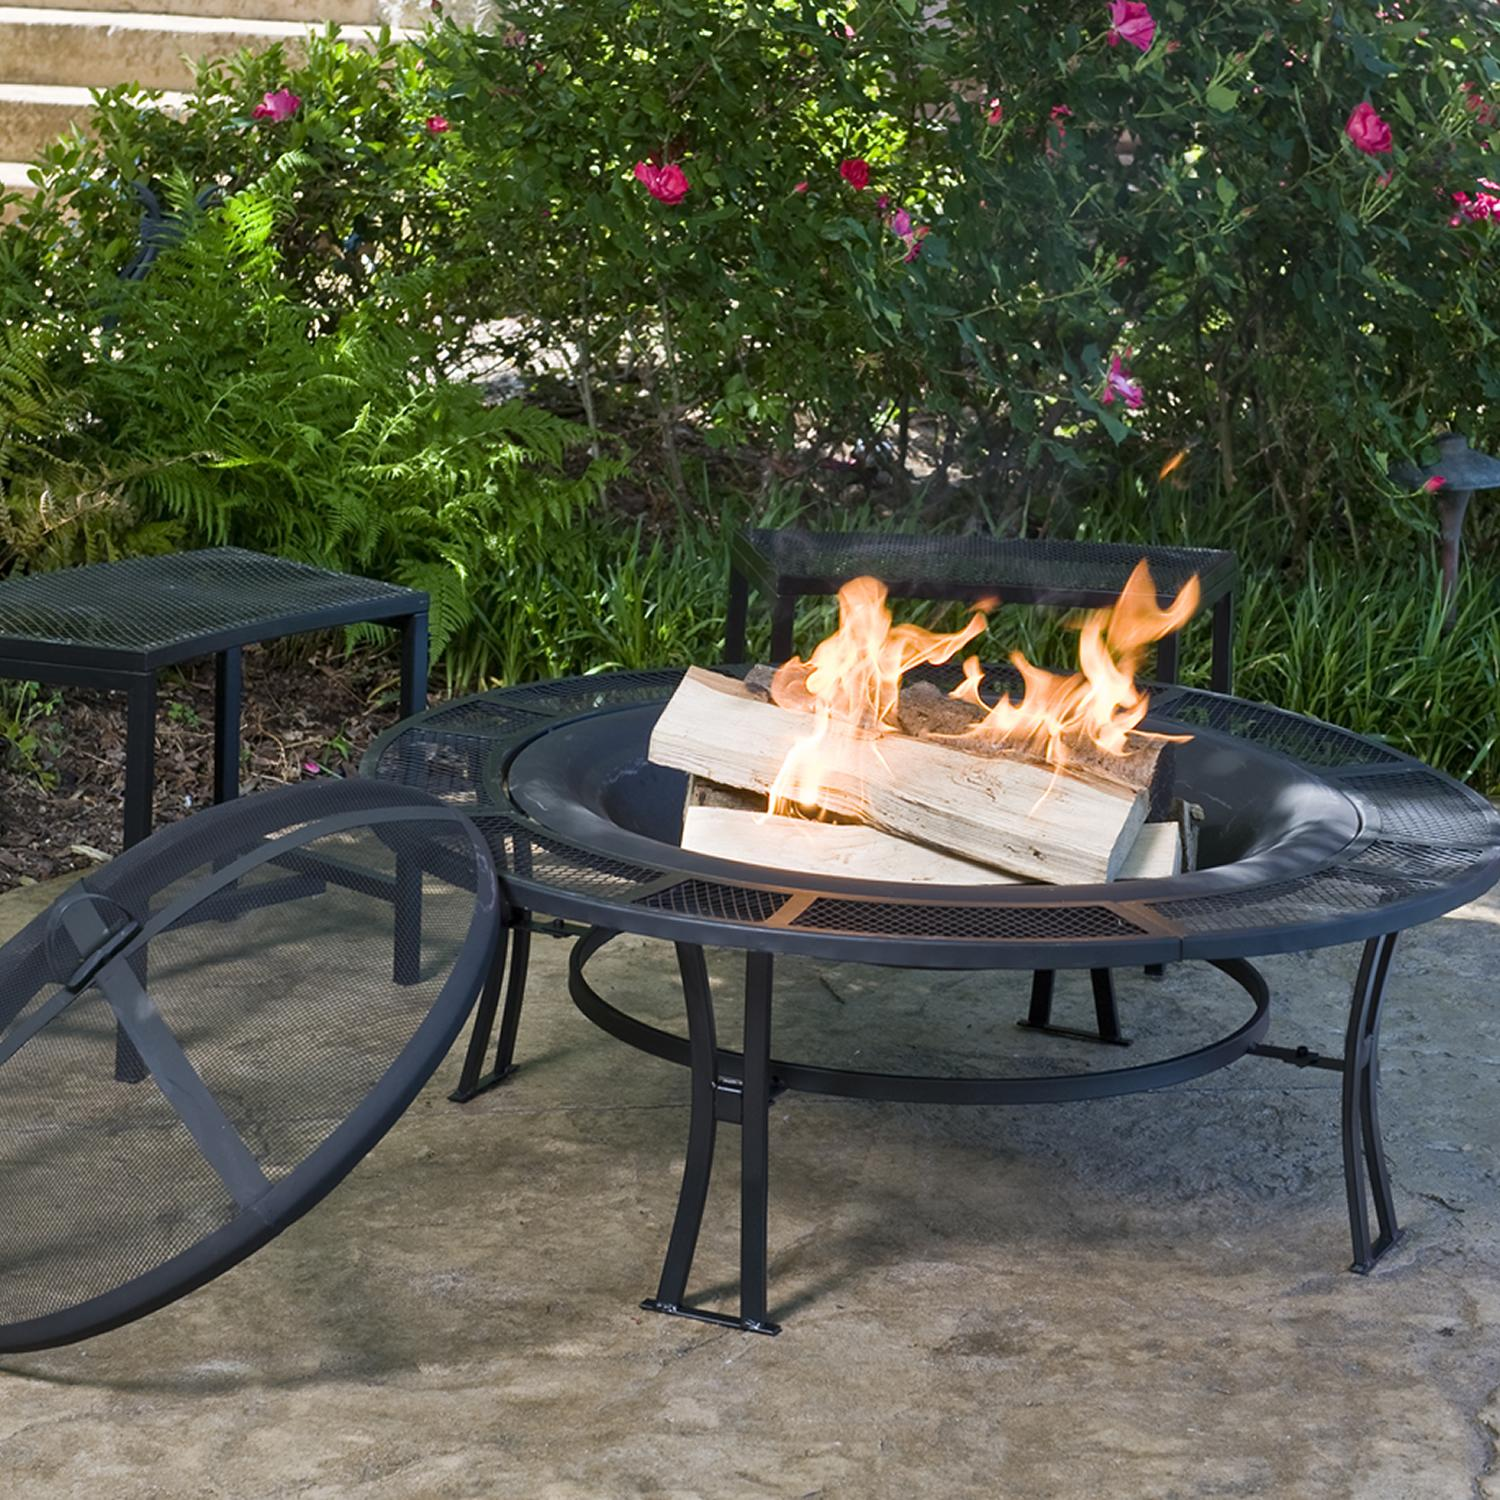 Cobraco steel fire pit and bench set in use Fire pit benches